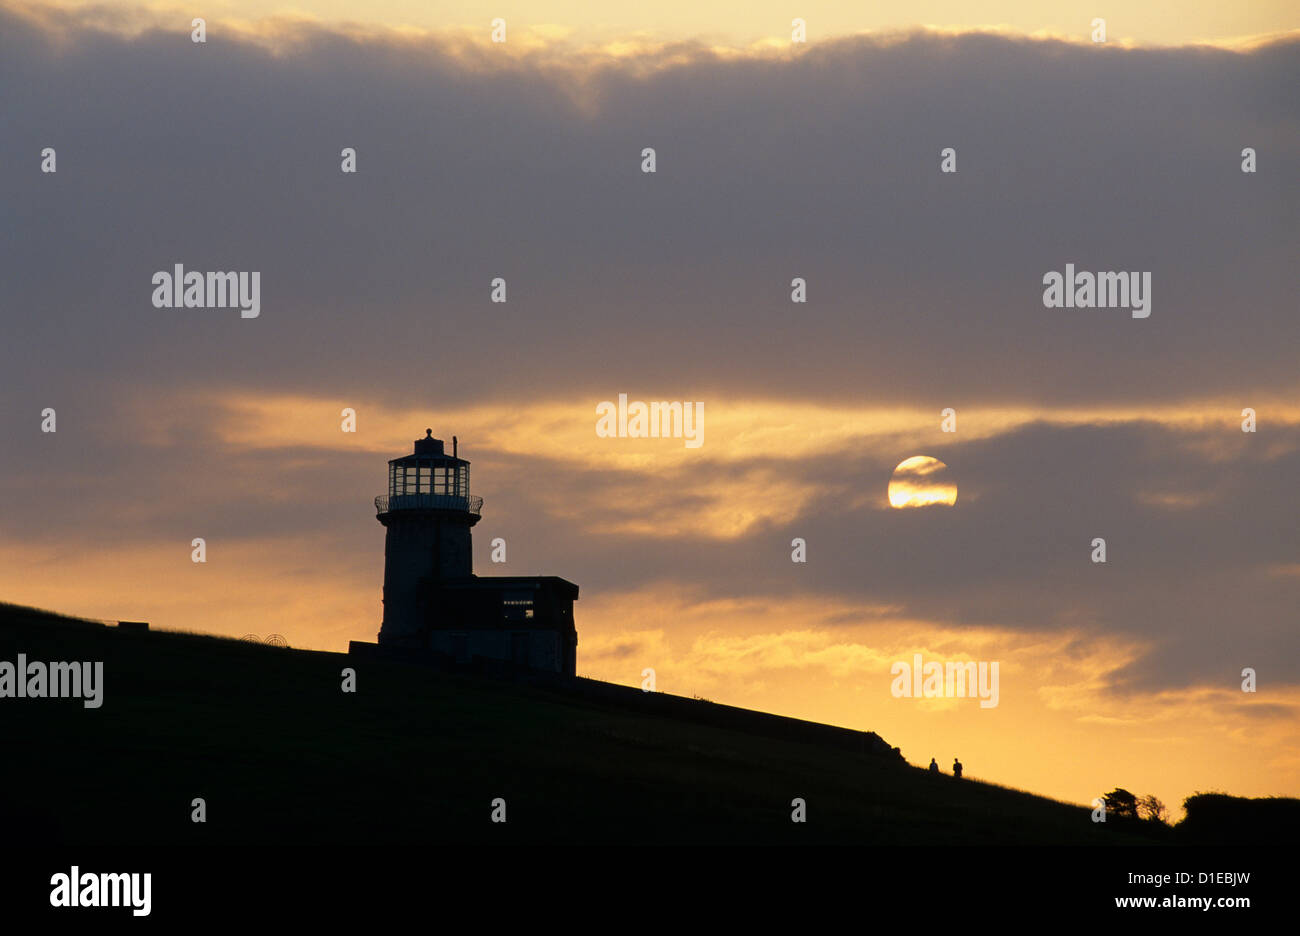 Belle Tout lighthouse on cliffs at sunset, near Birling Gap, East Sussex, England, United Kingdom, Europe - Stock Image